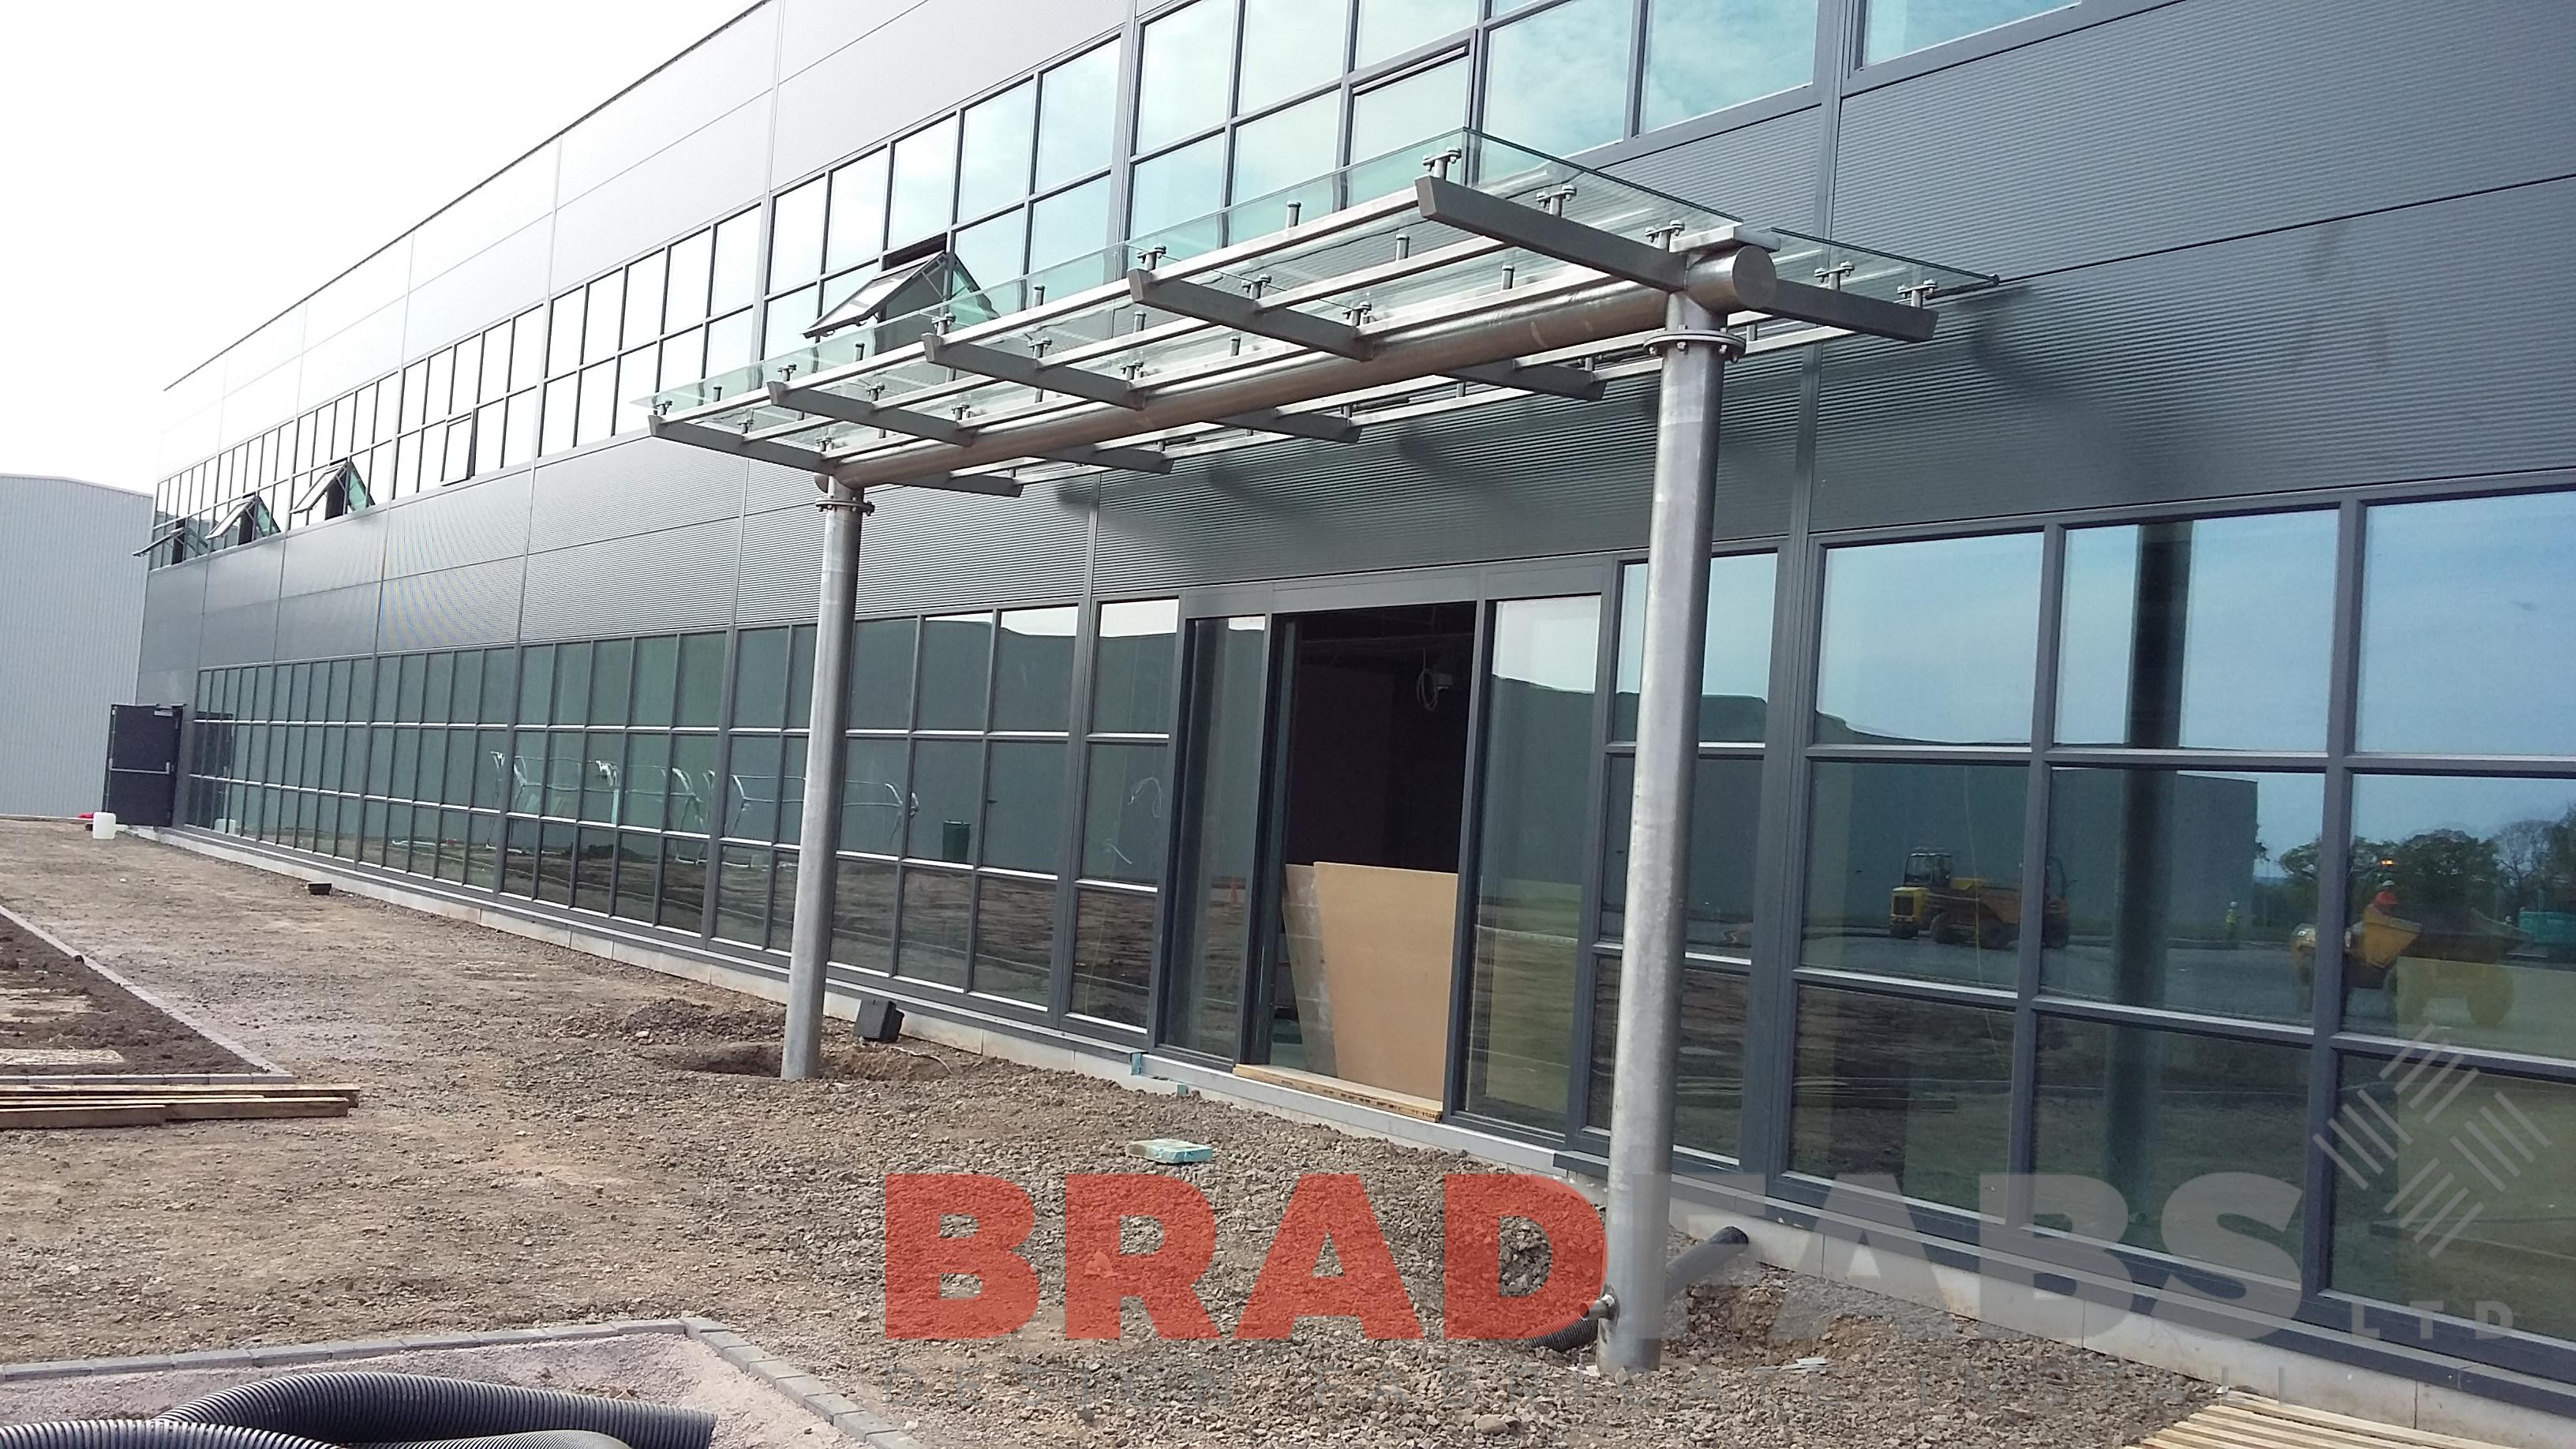 Large Airport glass canopy design by Bradfabs